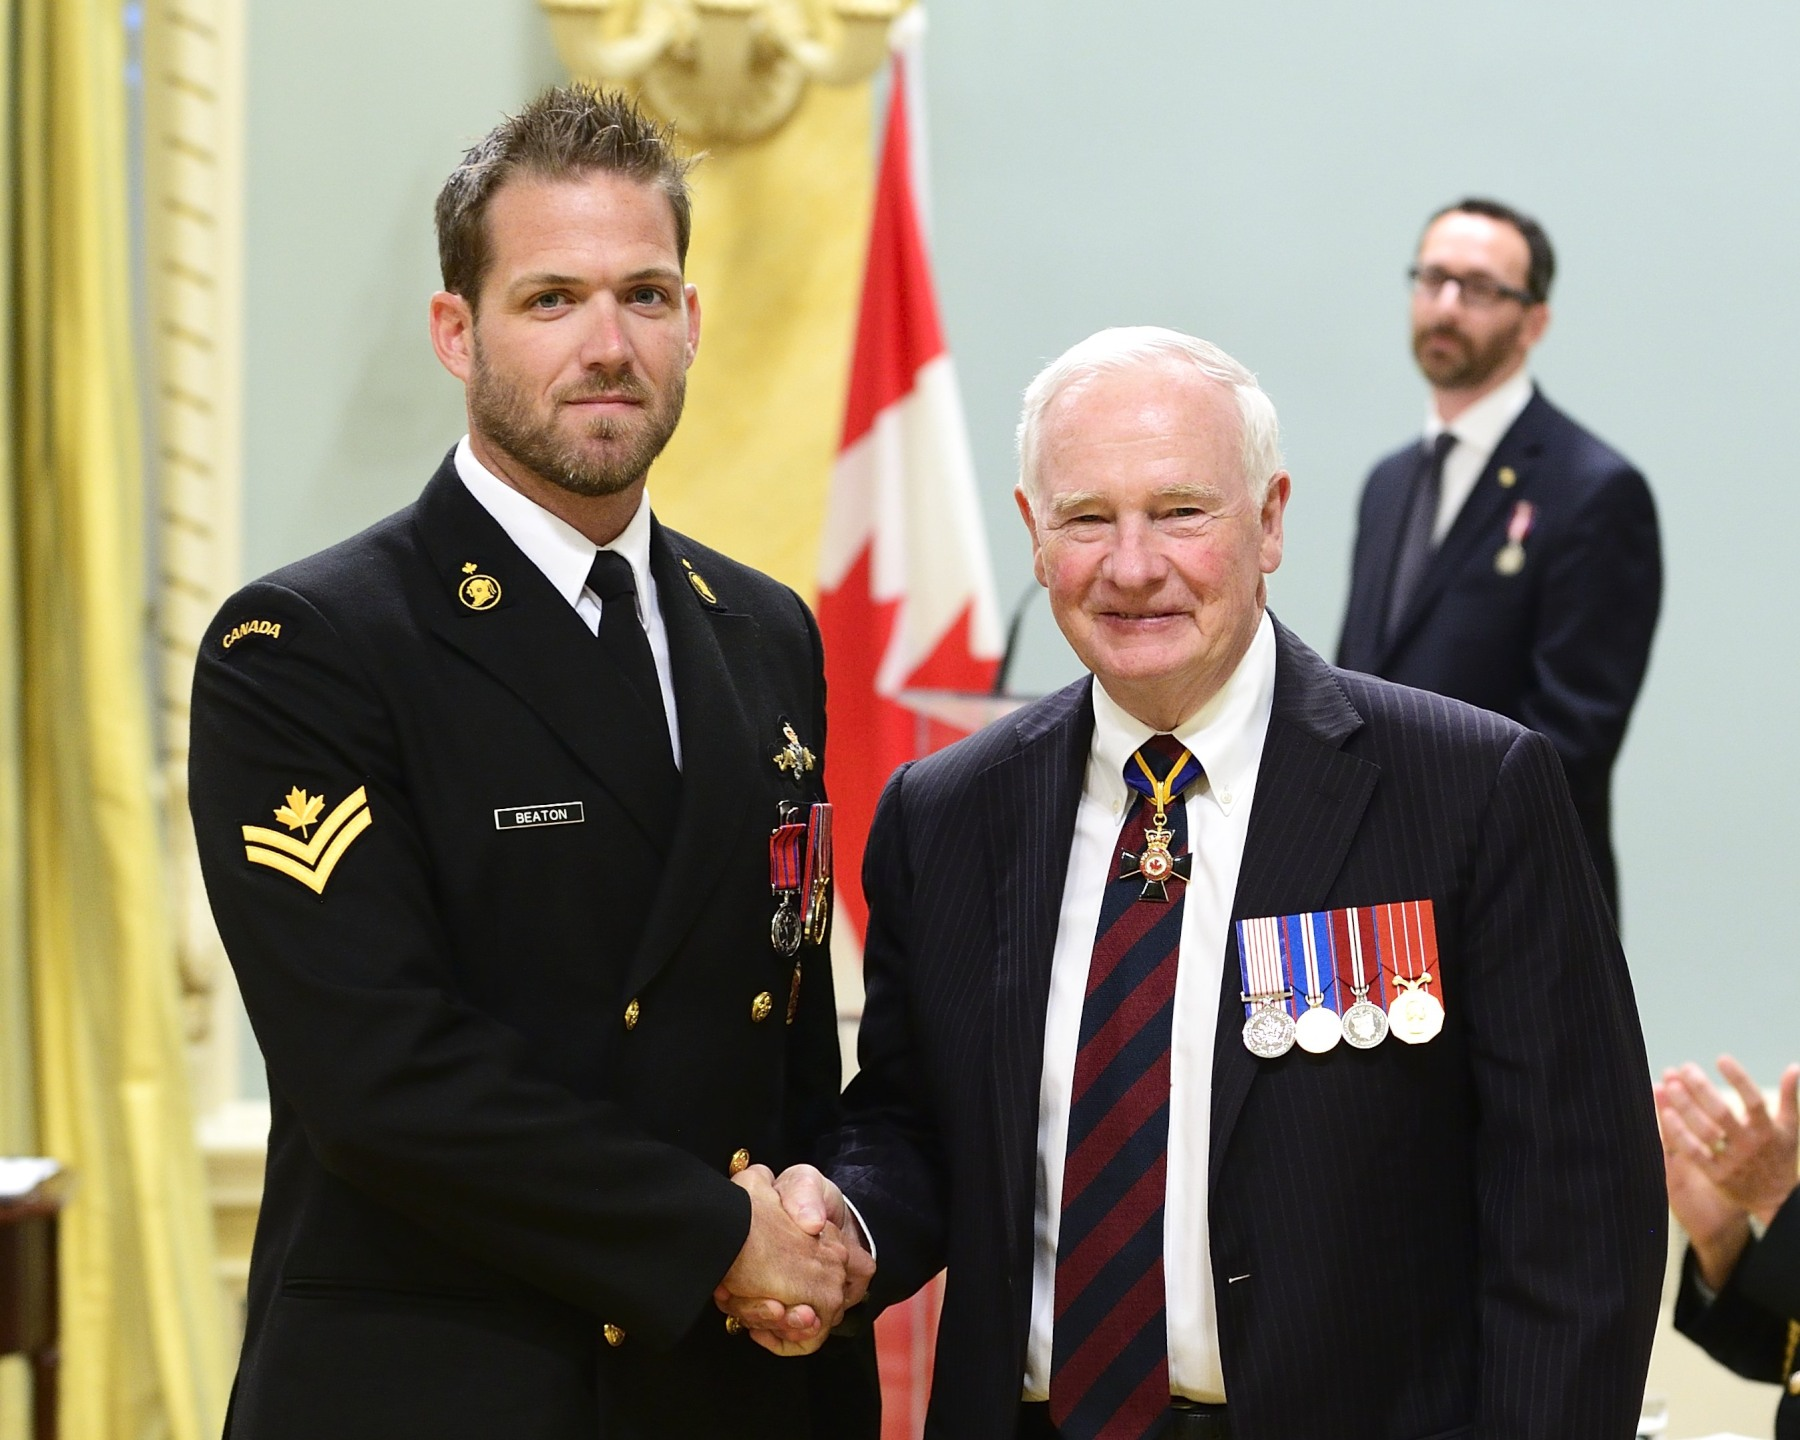 On June 19, 2013, Leading Seaman Evan Beaton, M.B., C.D. (New Haven, Prince Edward Island and Lawrencetown, Nova Scotia) rescued a fellow diver who had become tangled in his lifeline during a deep-diving operation in the Bedford Basin, in Halifax, Nova Scotia. Leading Seaman Beaton was forced to disregard the normal safe rate of descent to reach the victim, whose air supply was severely limited. At great personal risk, Leading Seaman Beaton then skipped decompression protocol to bring the victim quickly to the surface, thus saving his life.